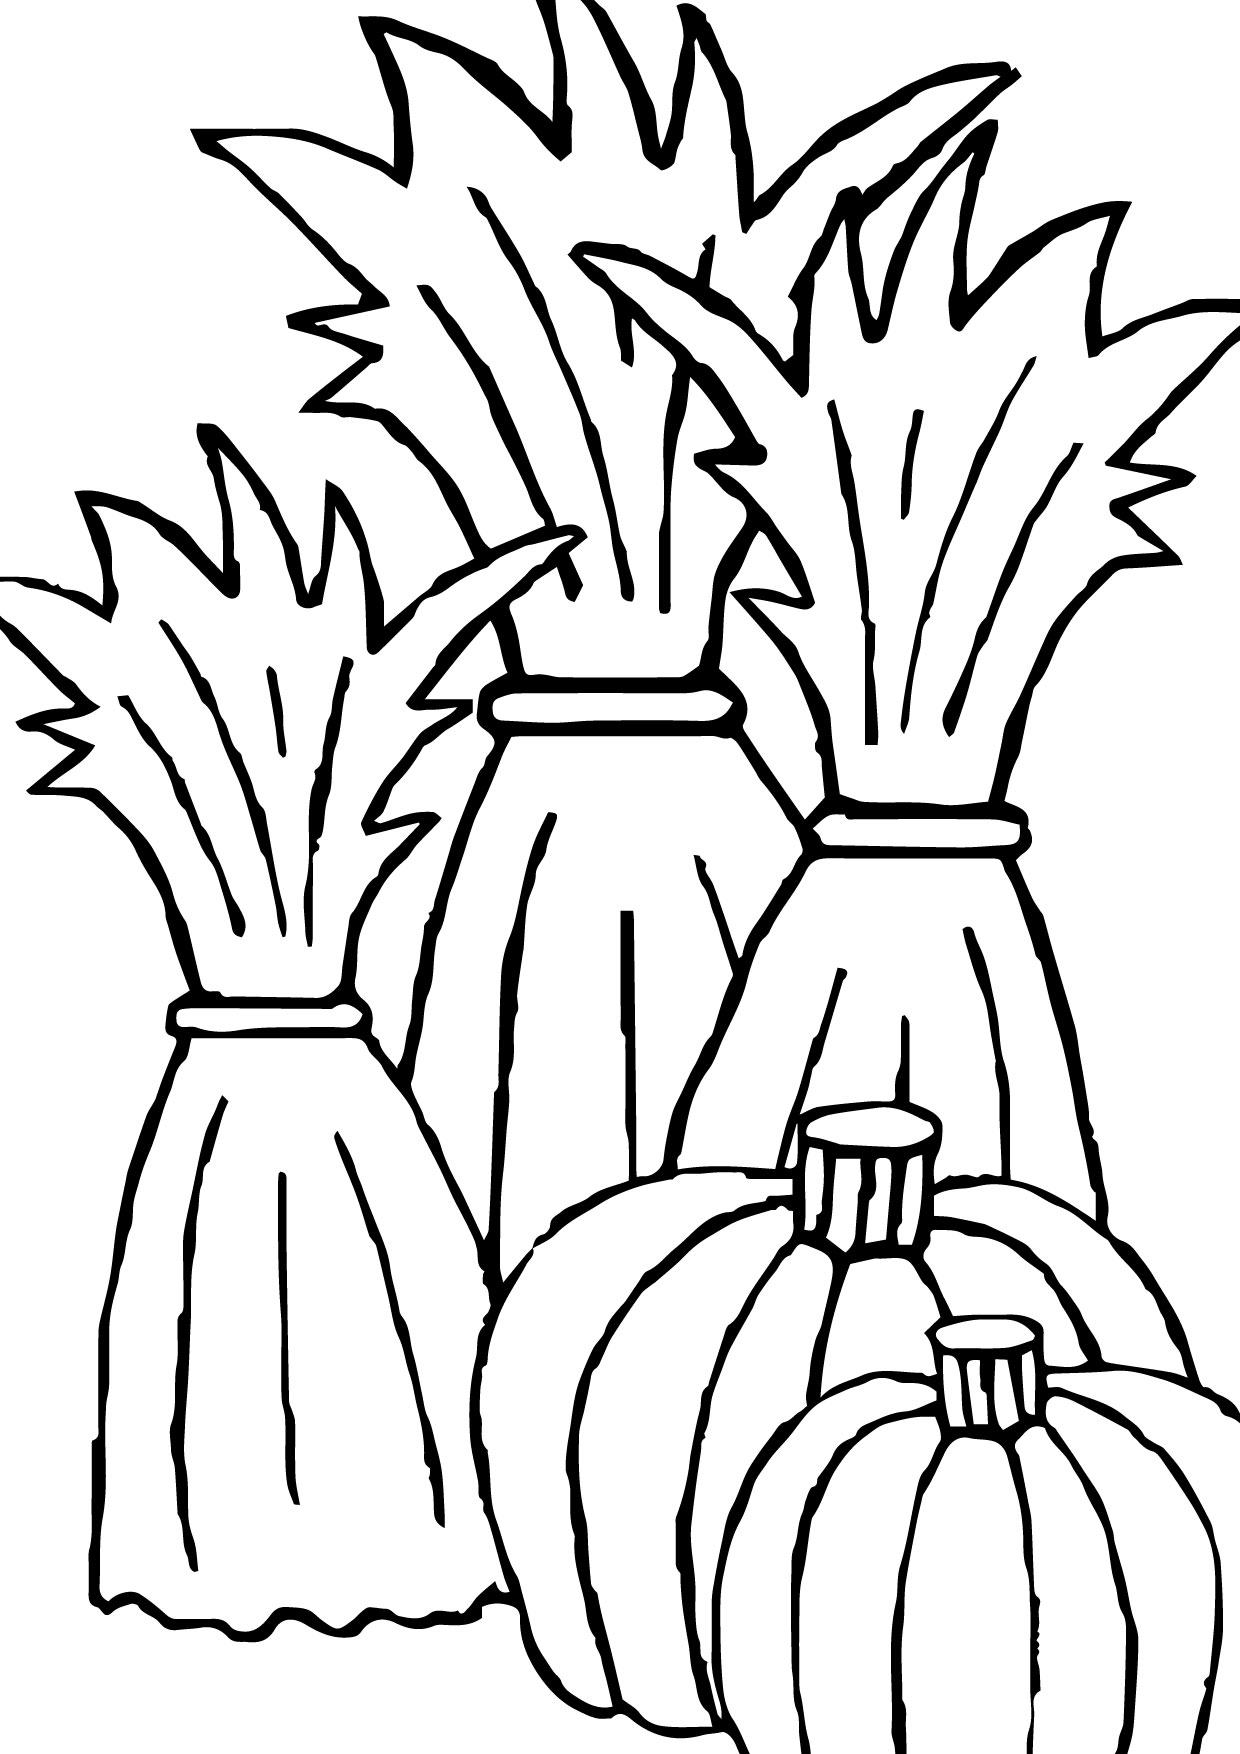 1240x1754 Awesome Corn Stalk Coloring Page 08 09 2015 081307 Coloring